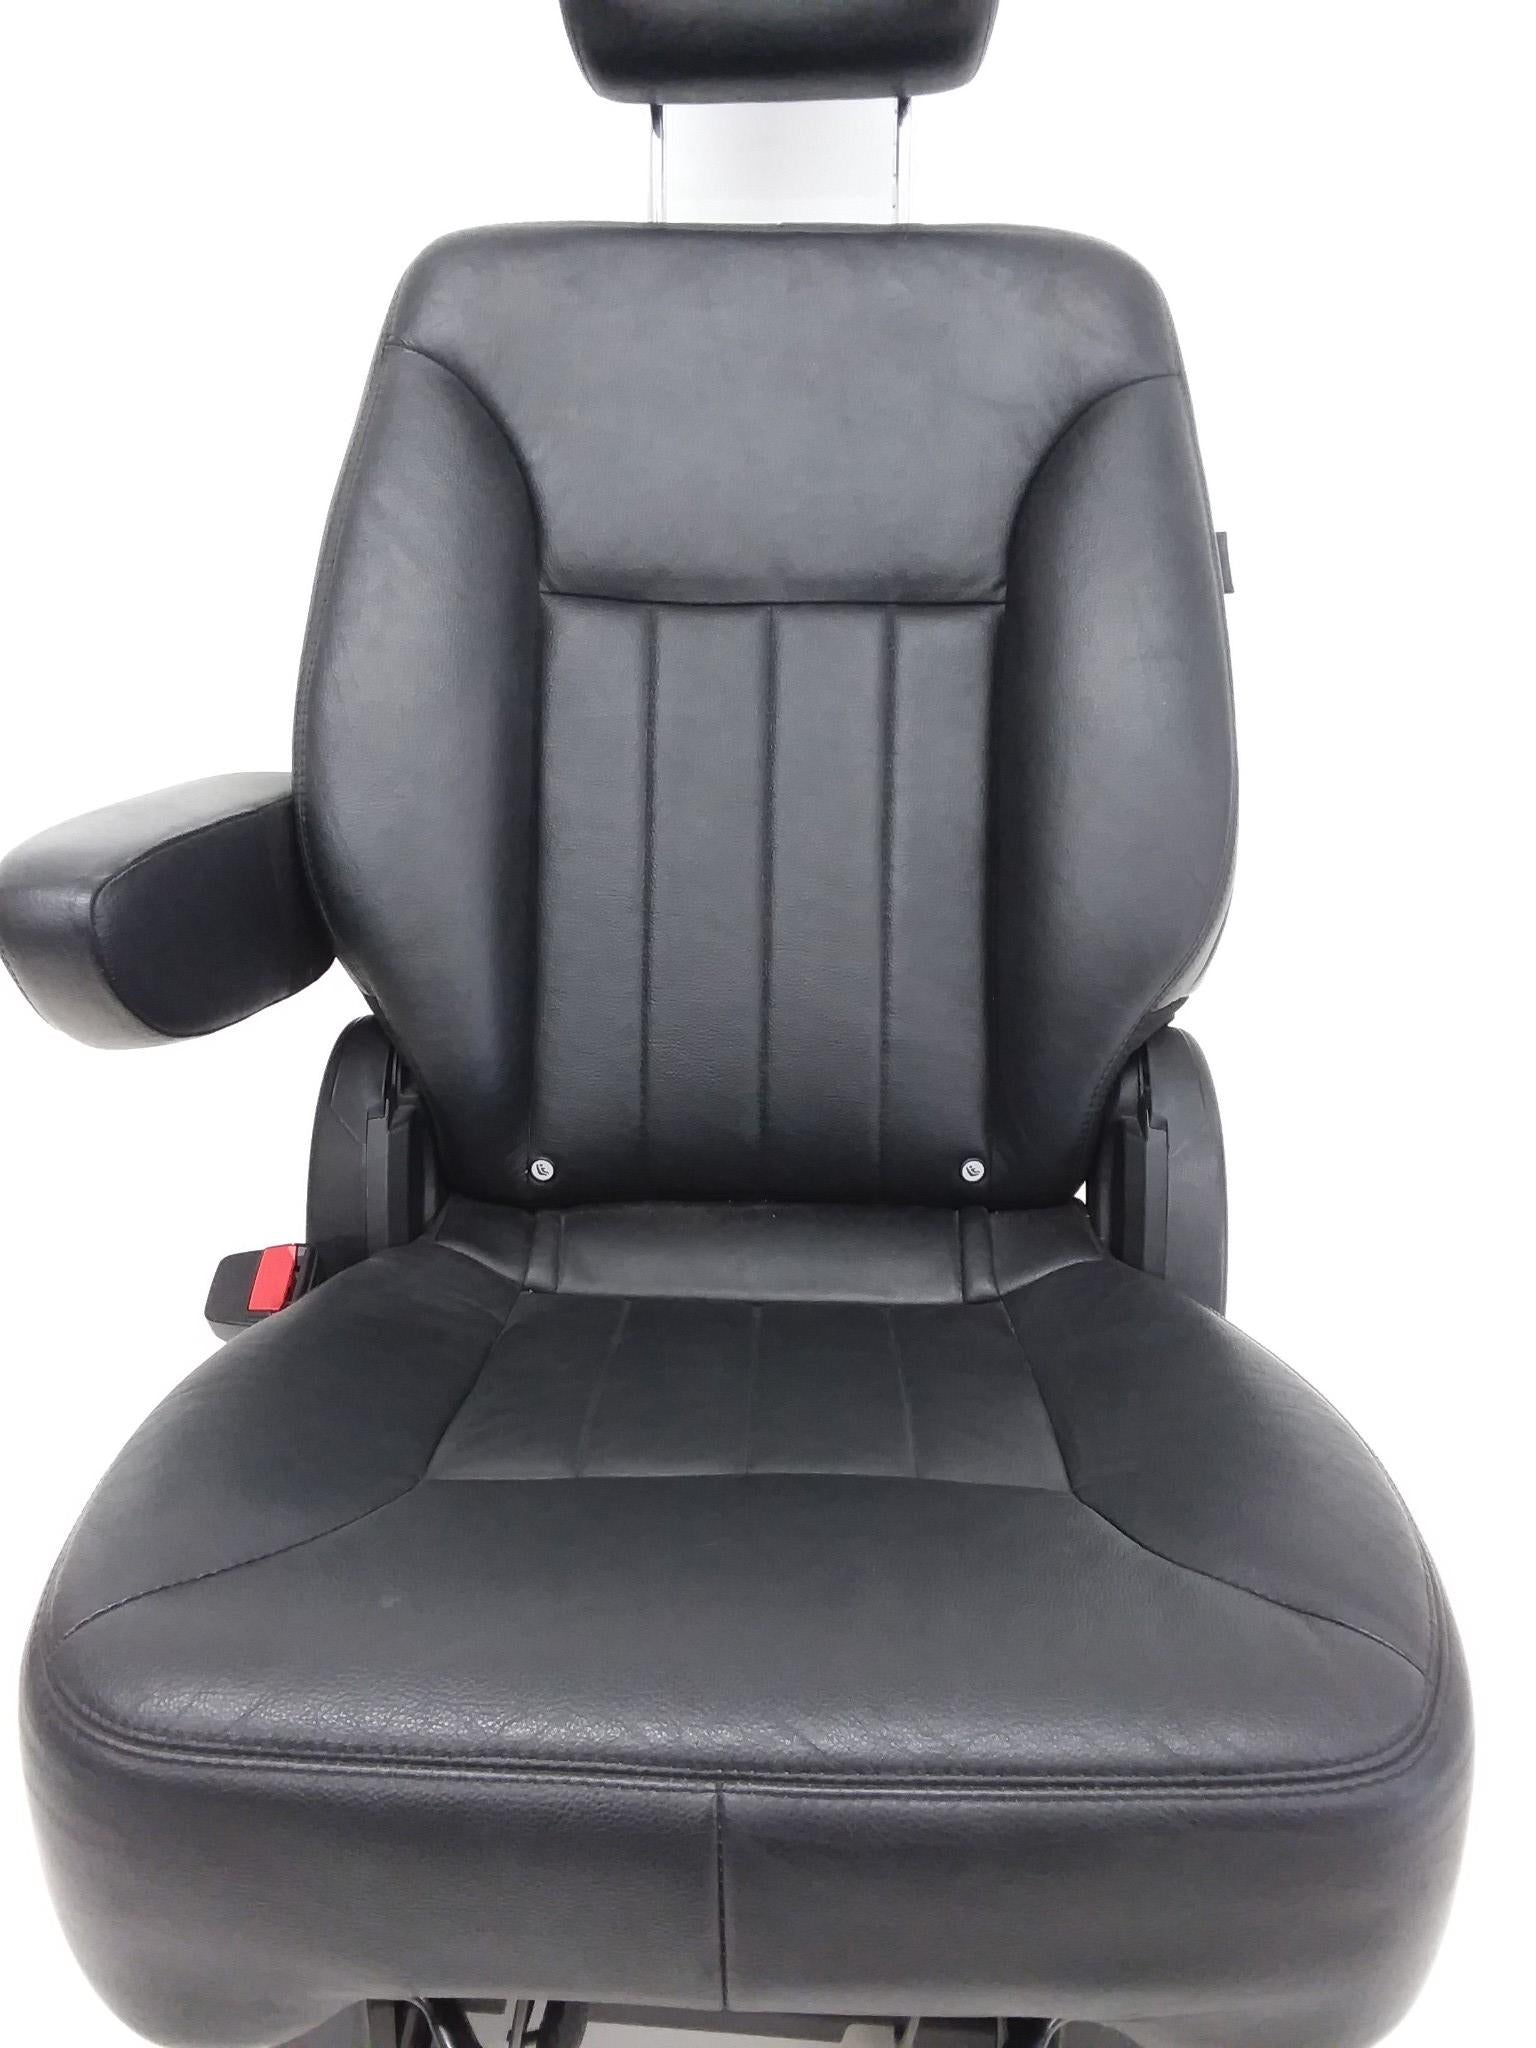 MERCEDES-BENZ R350 R320 R500 R63 MIDDLE LEFT SEAT BLACK LEATHER 2006 - 2013 OEM